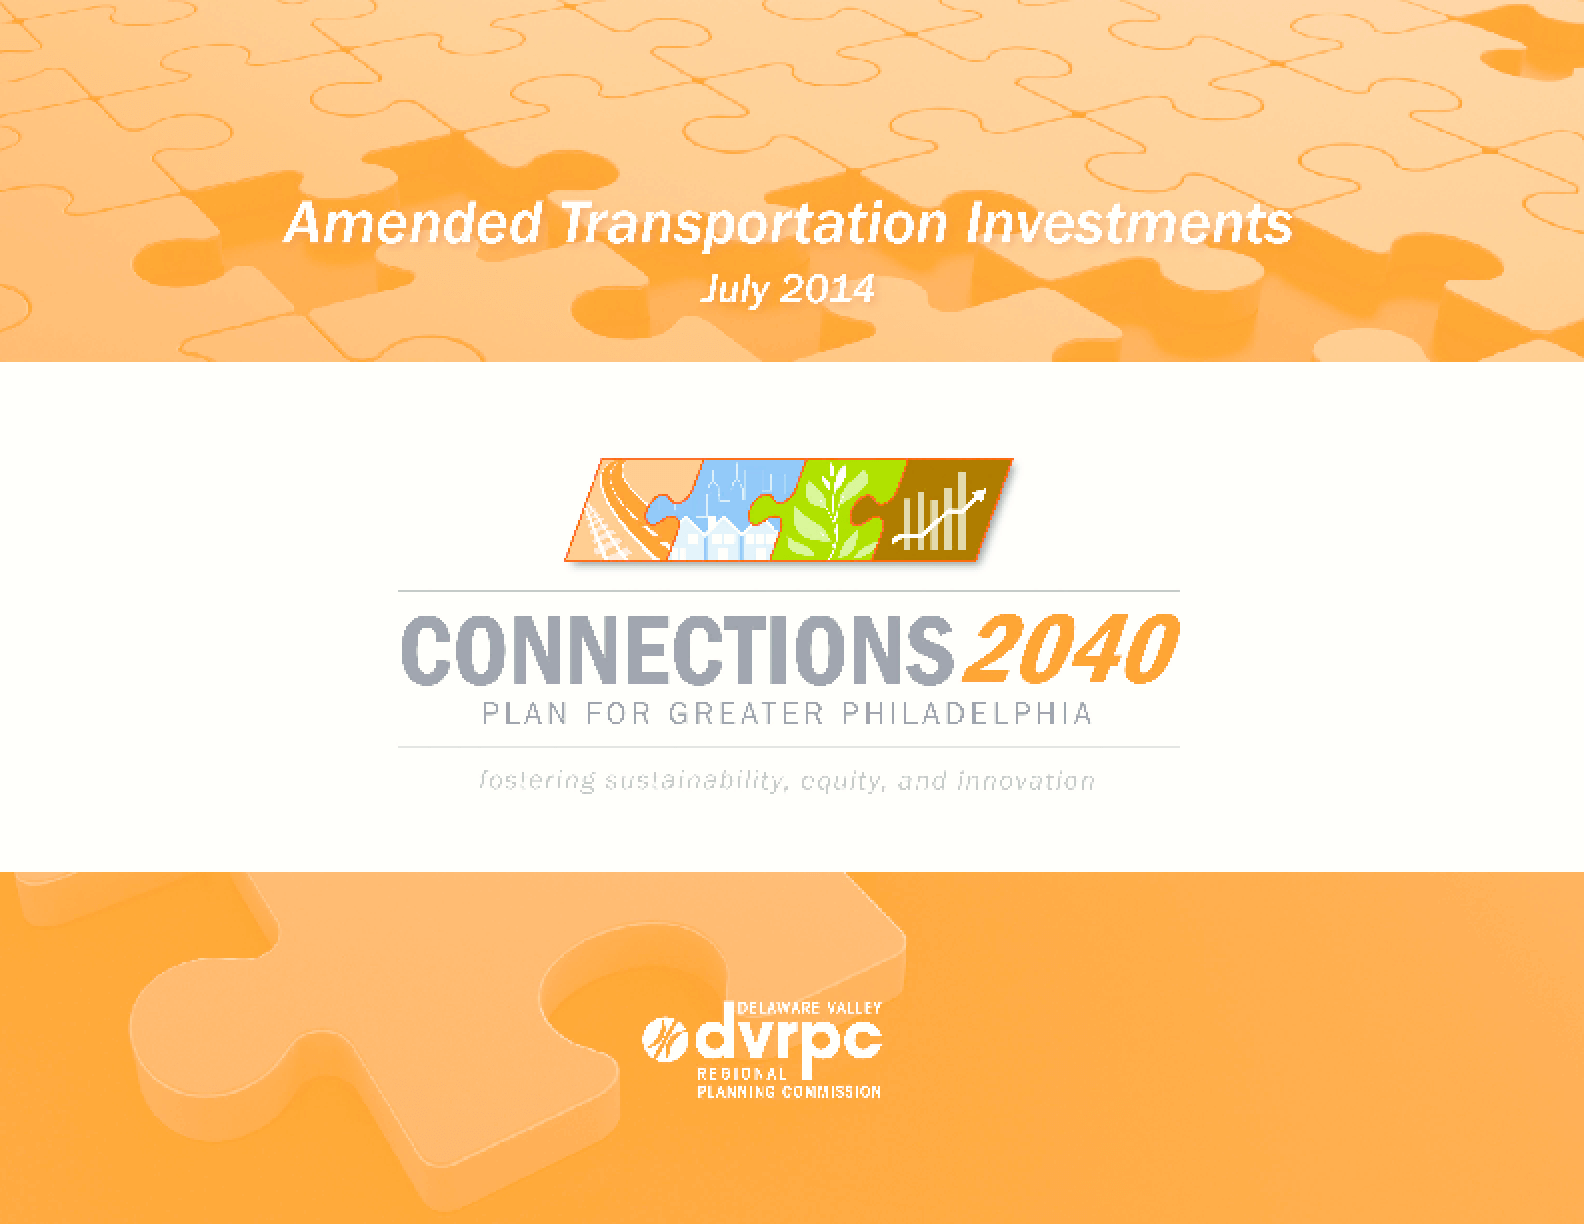 Connections 2040 Plan for Greater Philadelphia Amended Transportation Investments